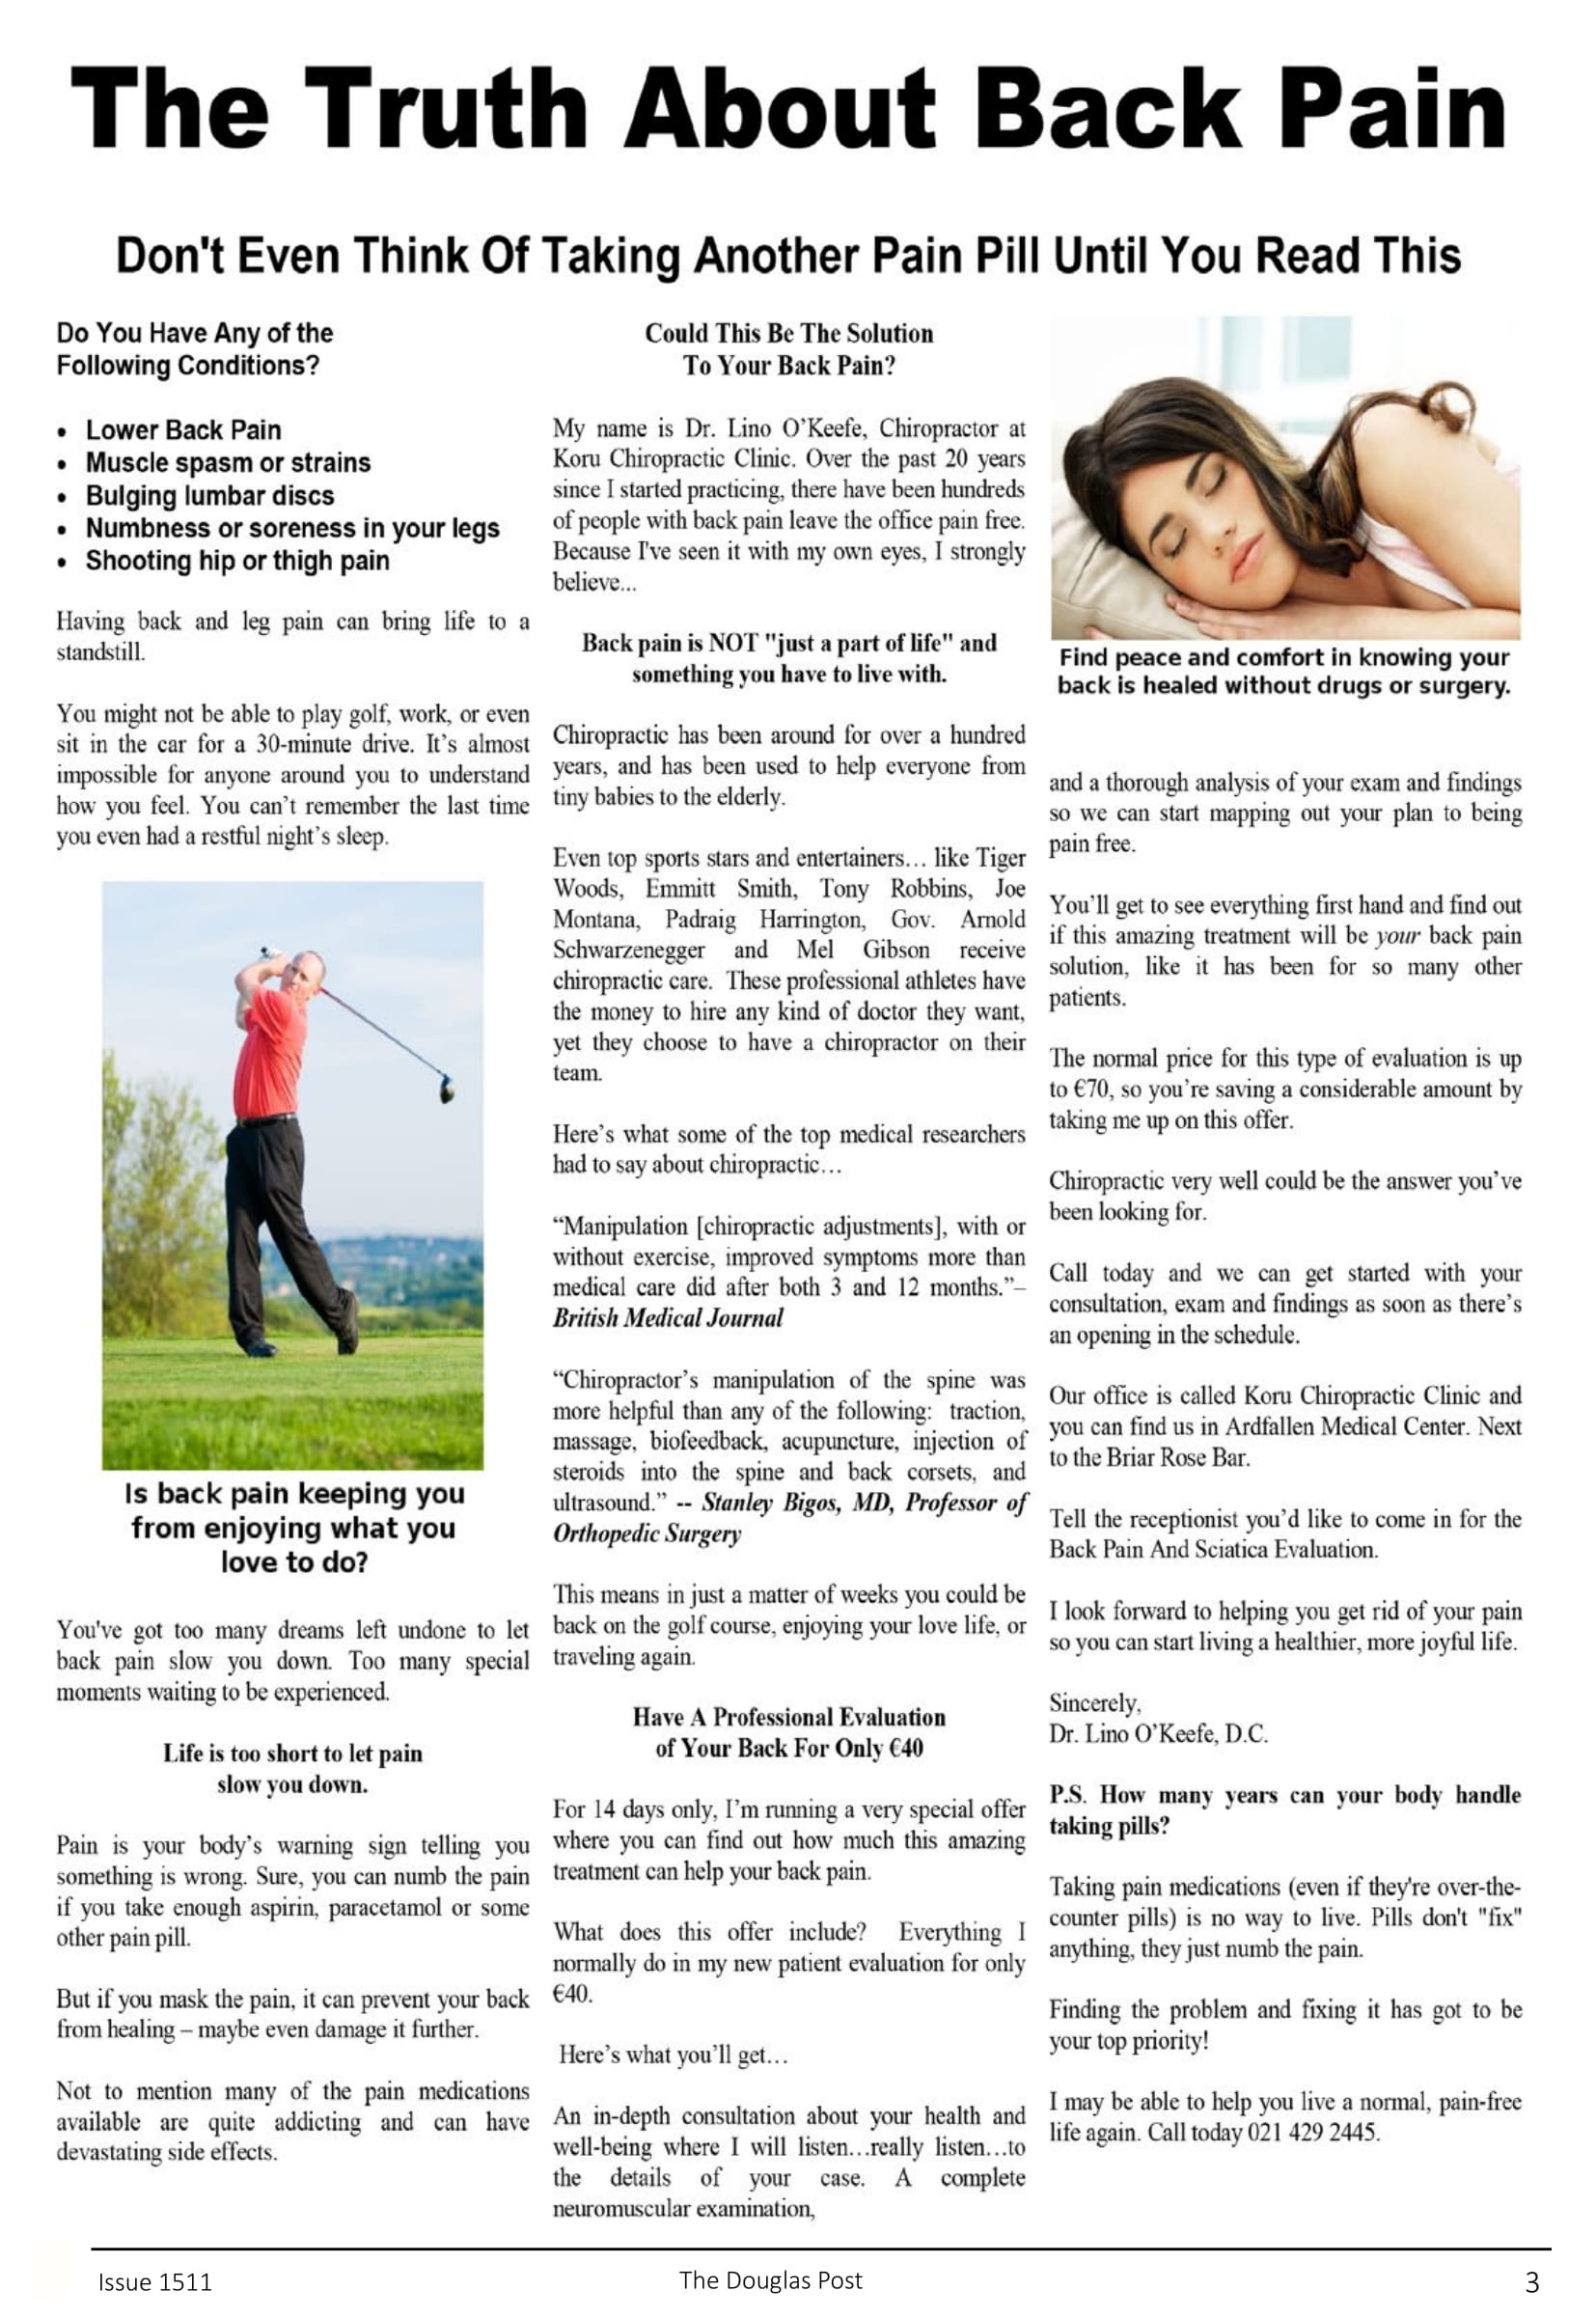 Page 3 of magazine